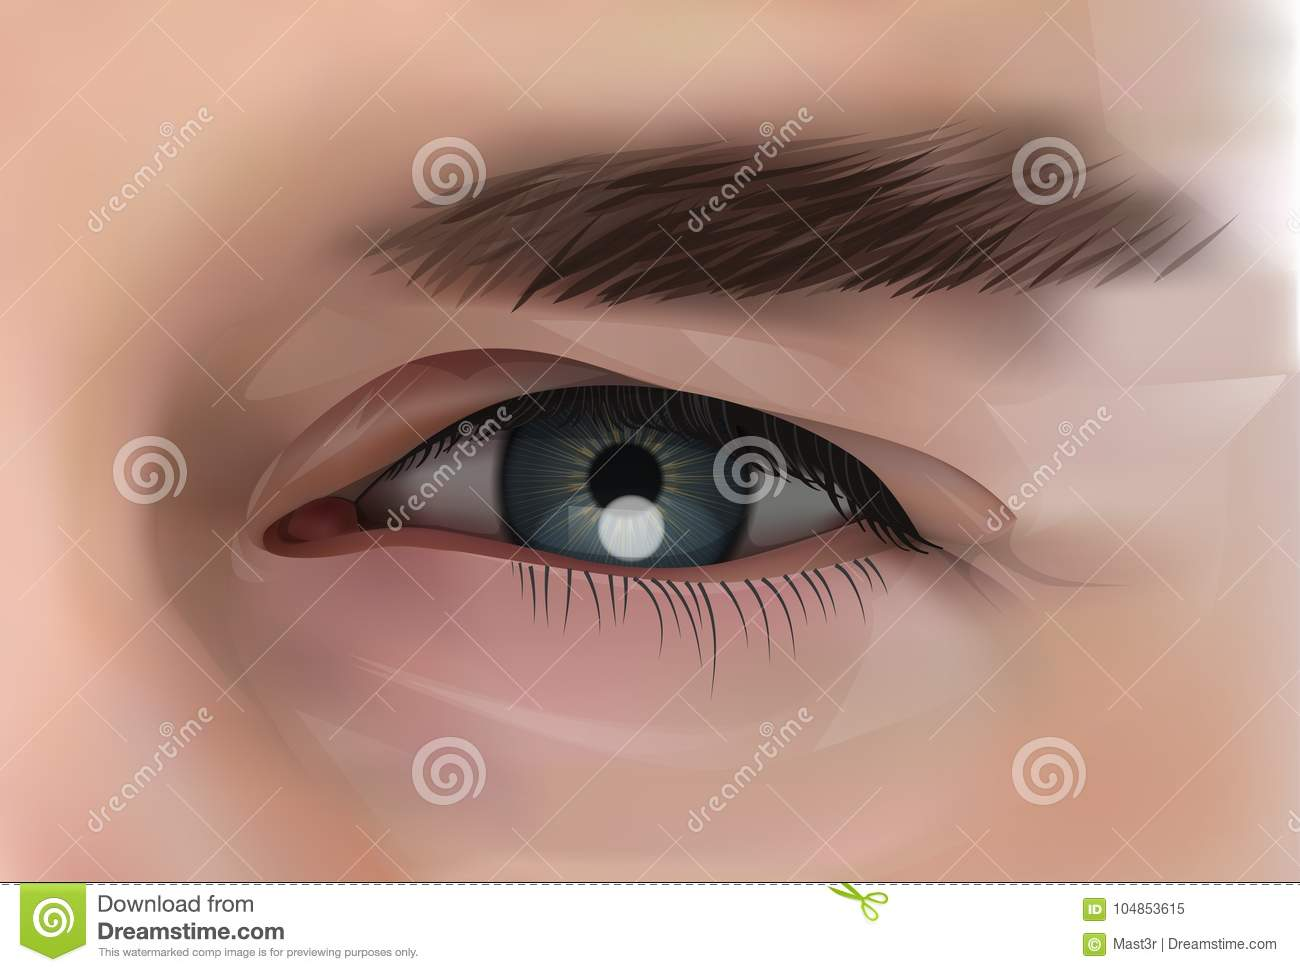 Download Realistic Eye Of Caucasian Male Person Closeup Stock Vector - Illustration of eyelid, glossy: 104853615